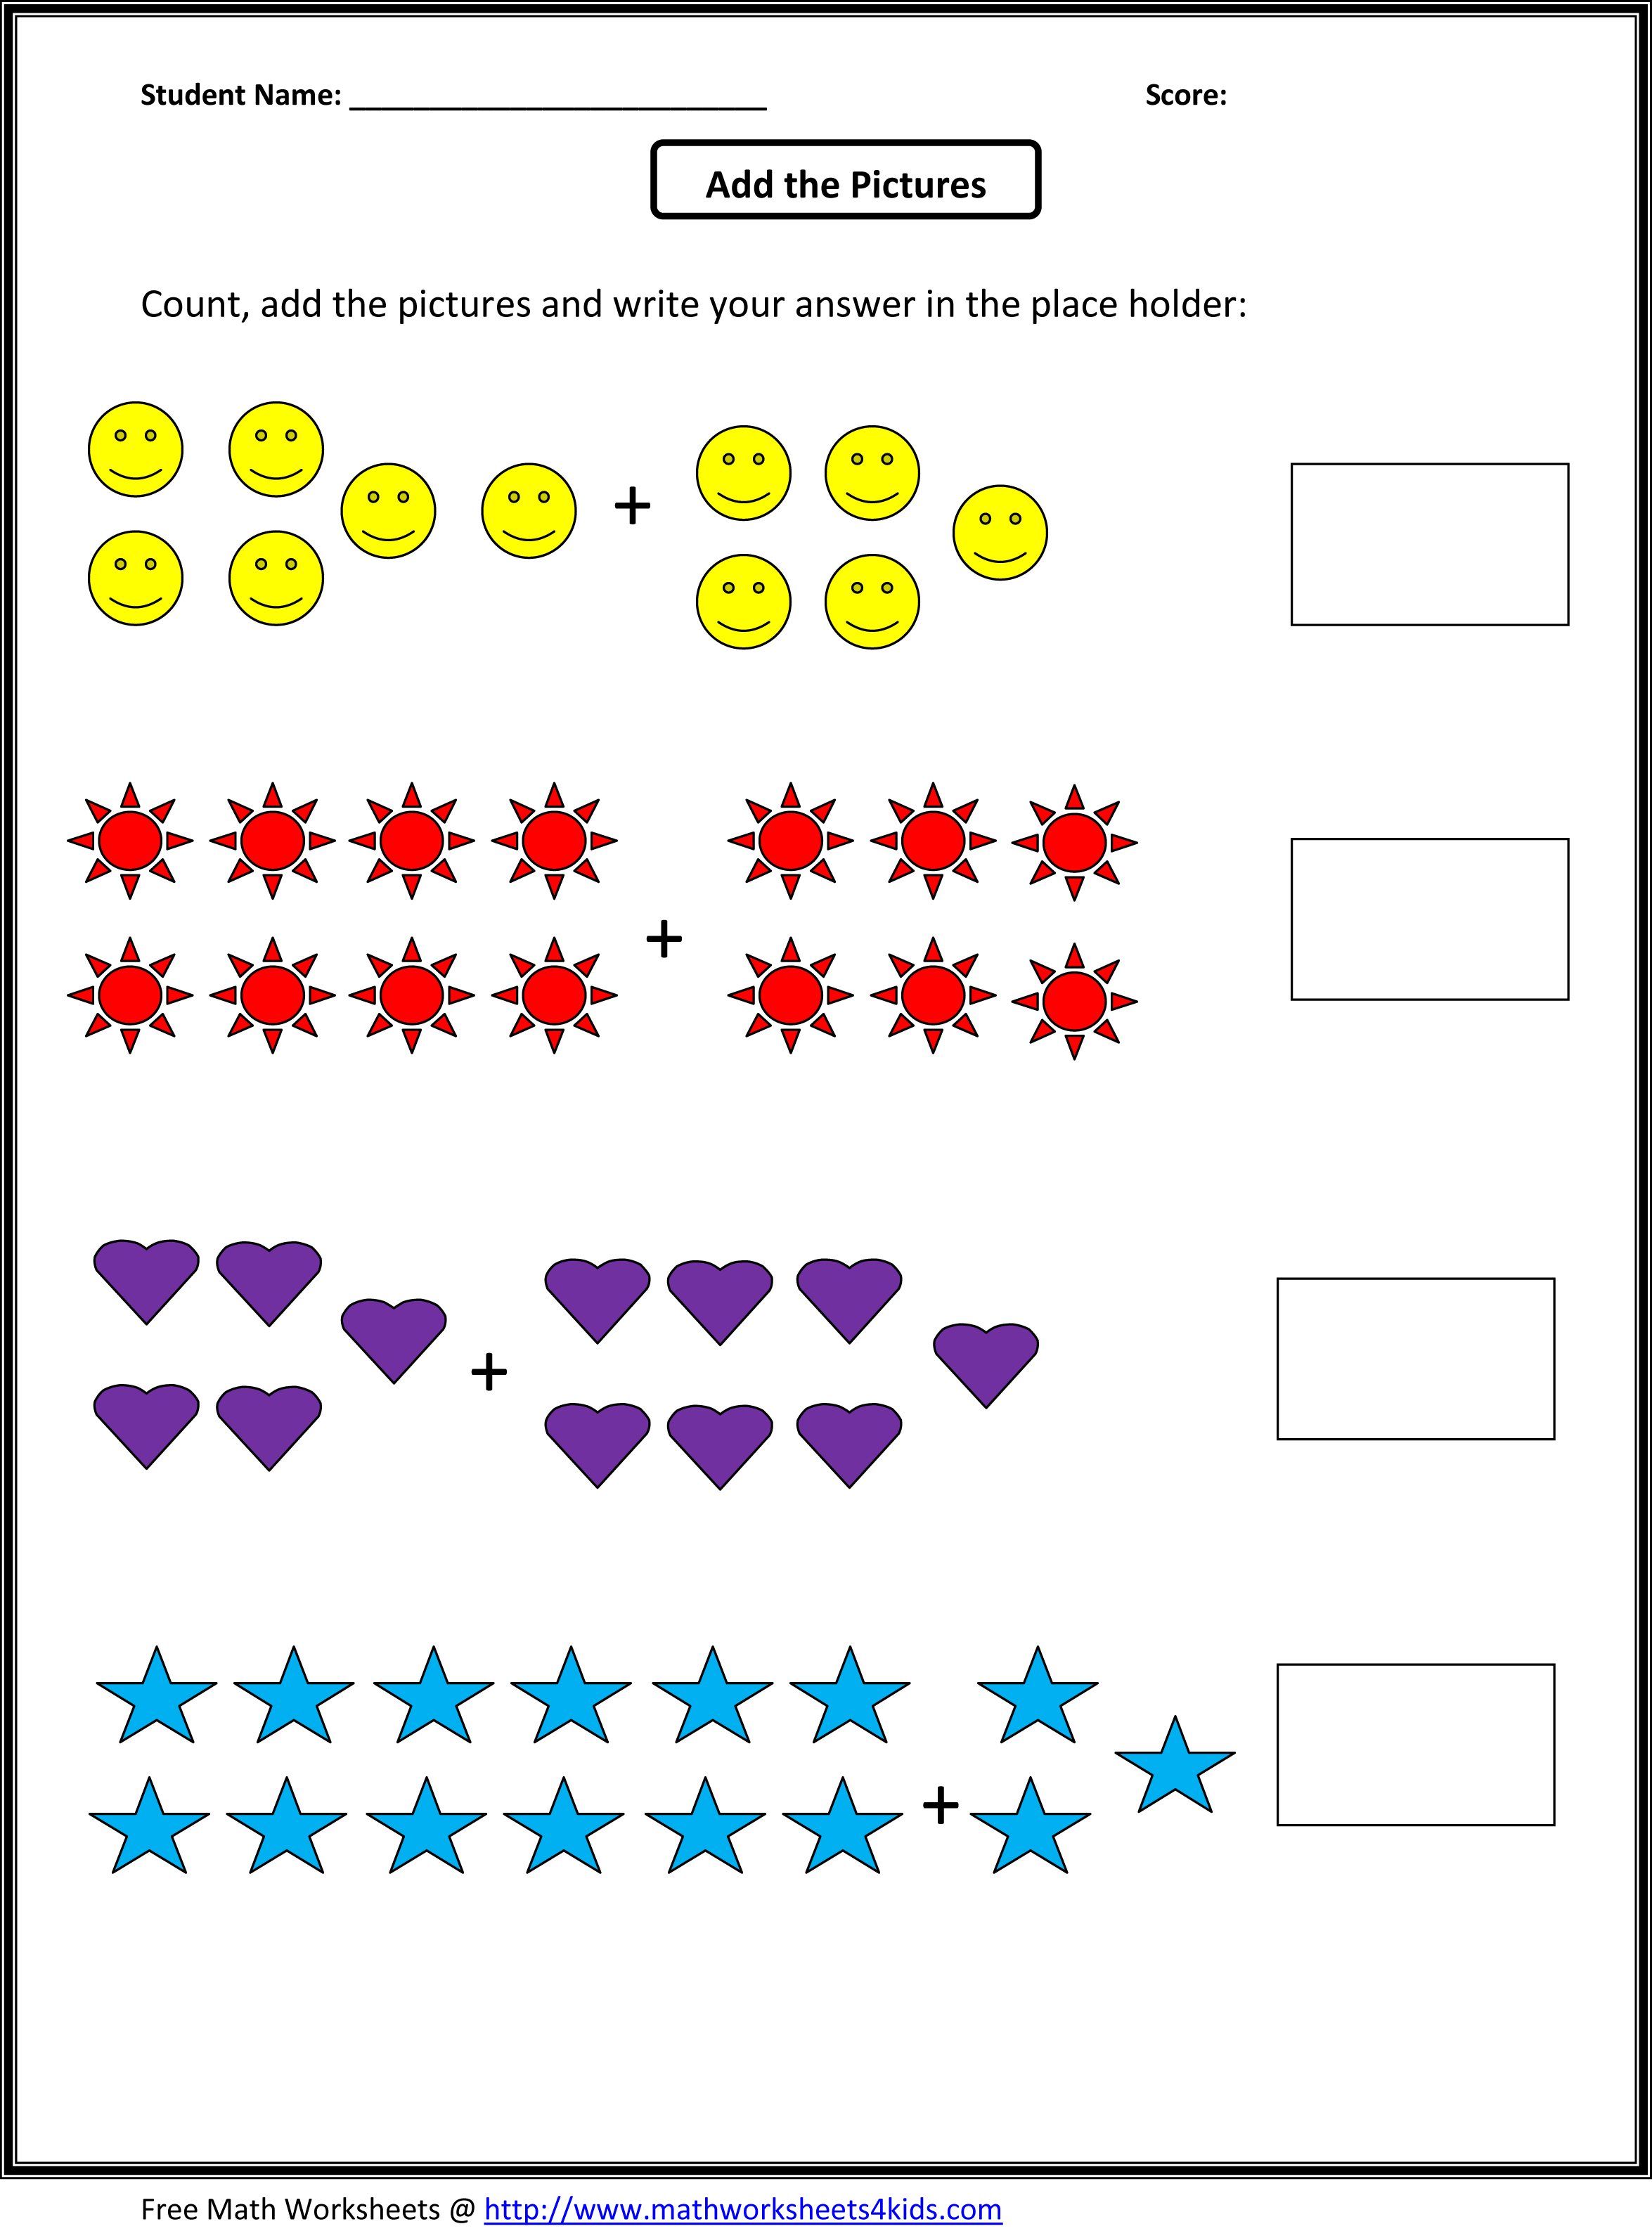 Weirdmailus  Pleasant Grade  Maths Worksheet  Reocurent With Entrancing Math Worksheets For St Grade Free  Reocurent With Astounding Chance Worksheet Also Algebra Collecting Like Terms Worksheet In Addition Listening Worksheets For Kids And Art Lesson Worksheets As Well As Secret Garden Worksheets Additionally Kumon Worksheets English From Reocurentcom With Weirdmailus  Entrancing Grade  Maths Worksheet  Reocurent With Astounding Math Worksheets For St Grade Free  Reocurent And Pleasant Chance Worksheet Also Algebra Collecting Like Terms Worksheet In Addition Listening Worksheets For Kids From Reocurentcom